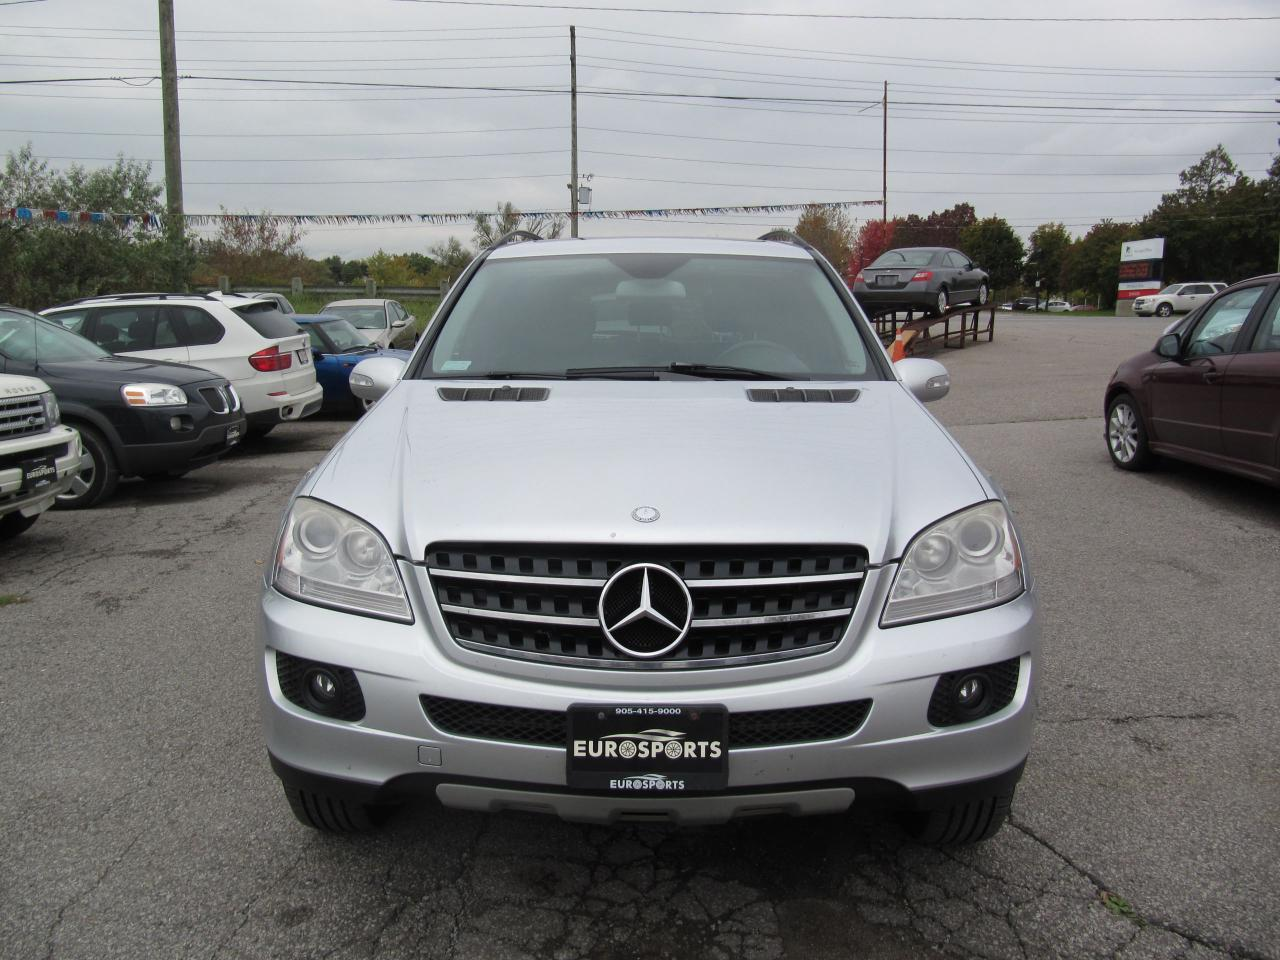 used 2007 mercedes benz ml 350 3 5l for sale in newmarket ontario. Black Bedroom Furniture Sets. Home Design Ideas